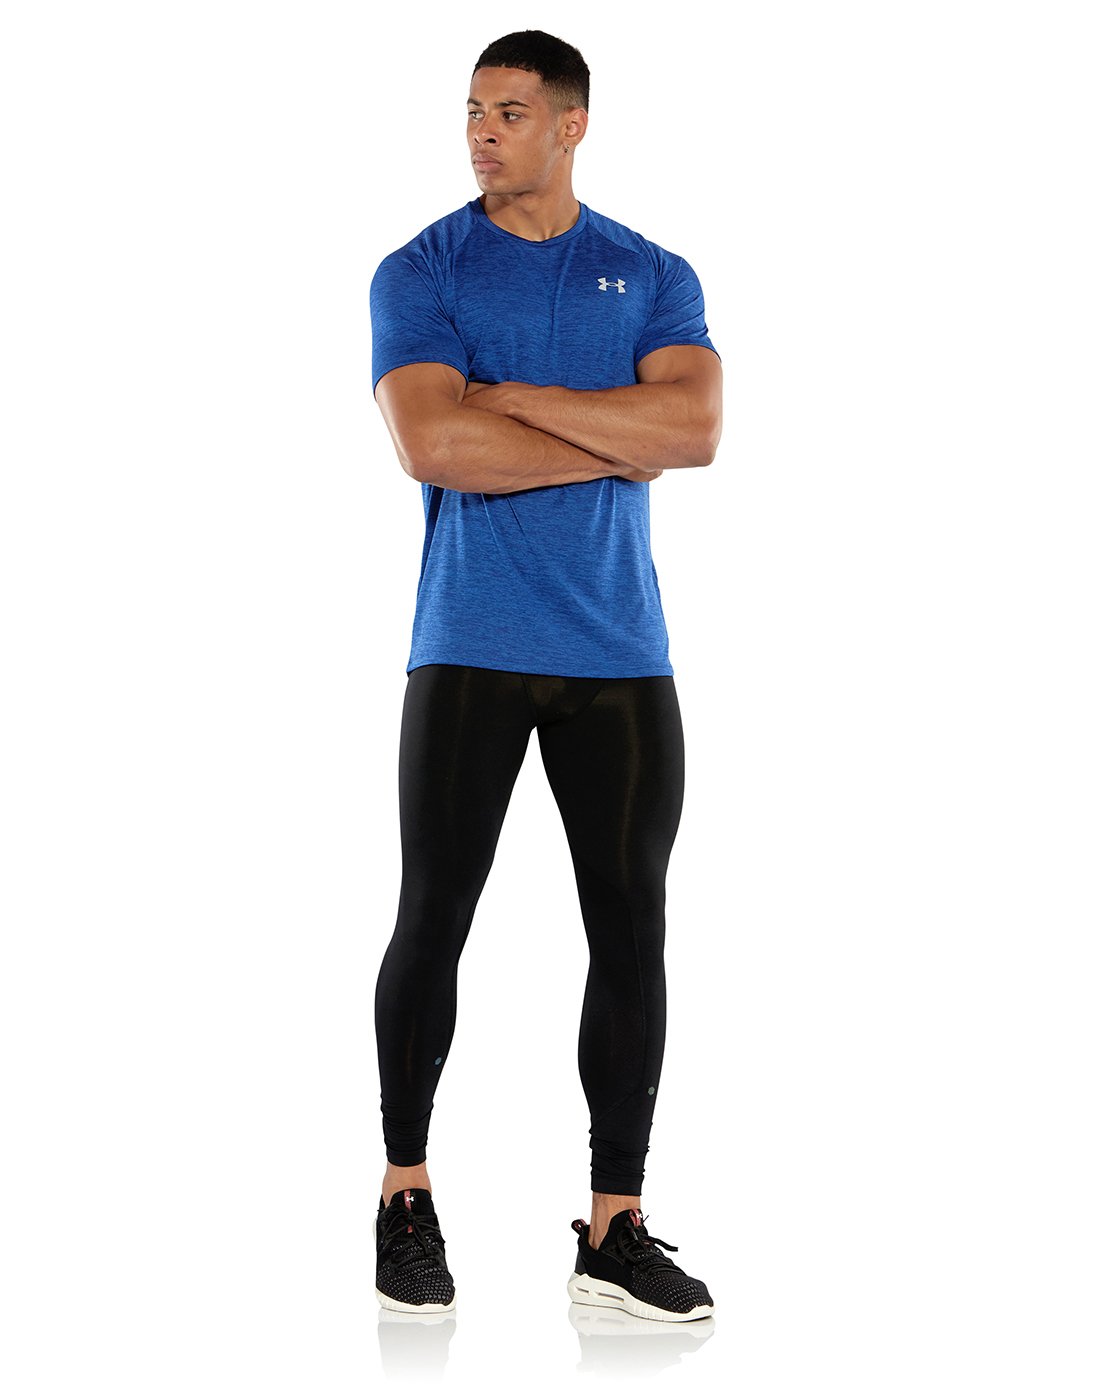 54b53299c5d1f0 Men's Blue Under Armour 2.0 Gym T-Shirt | Life Style Sports